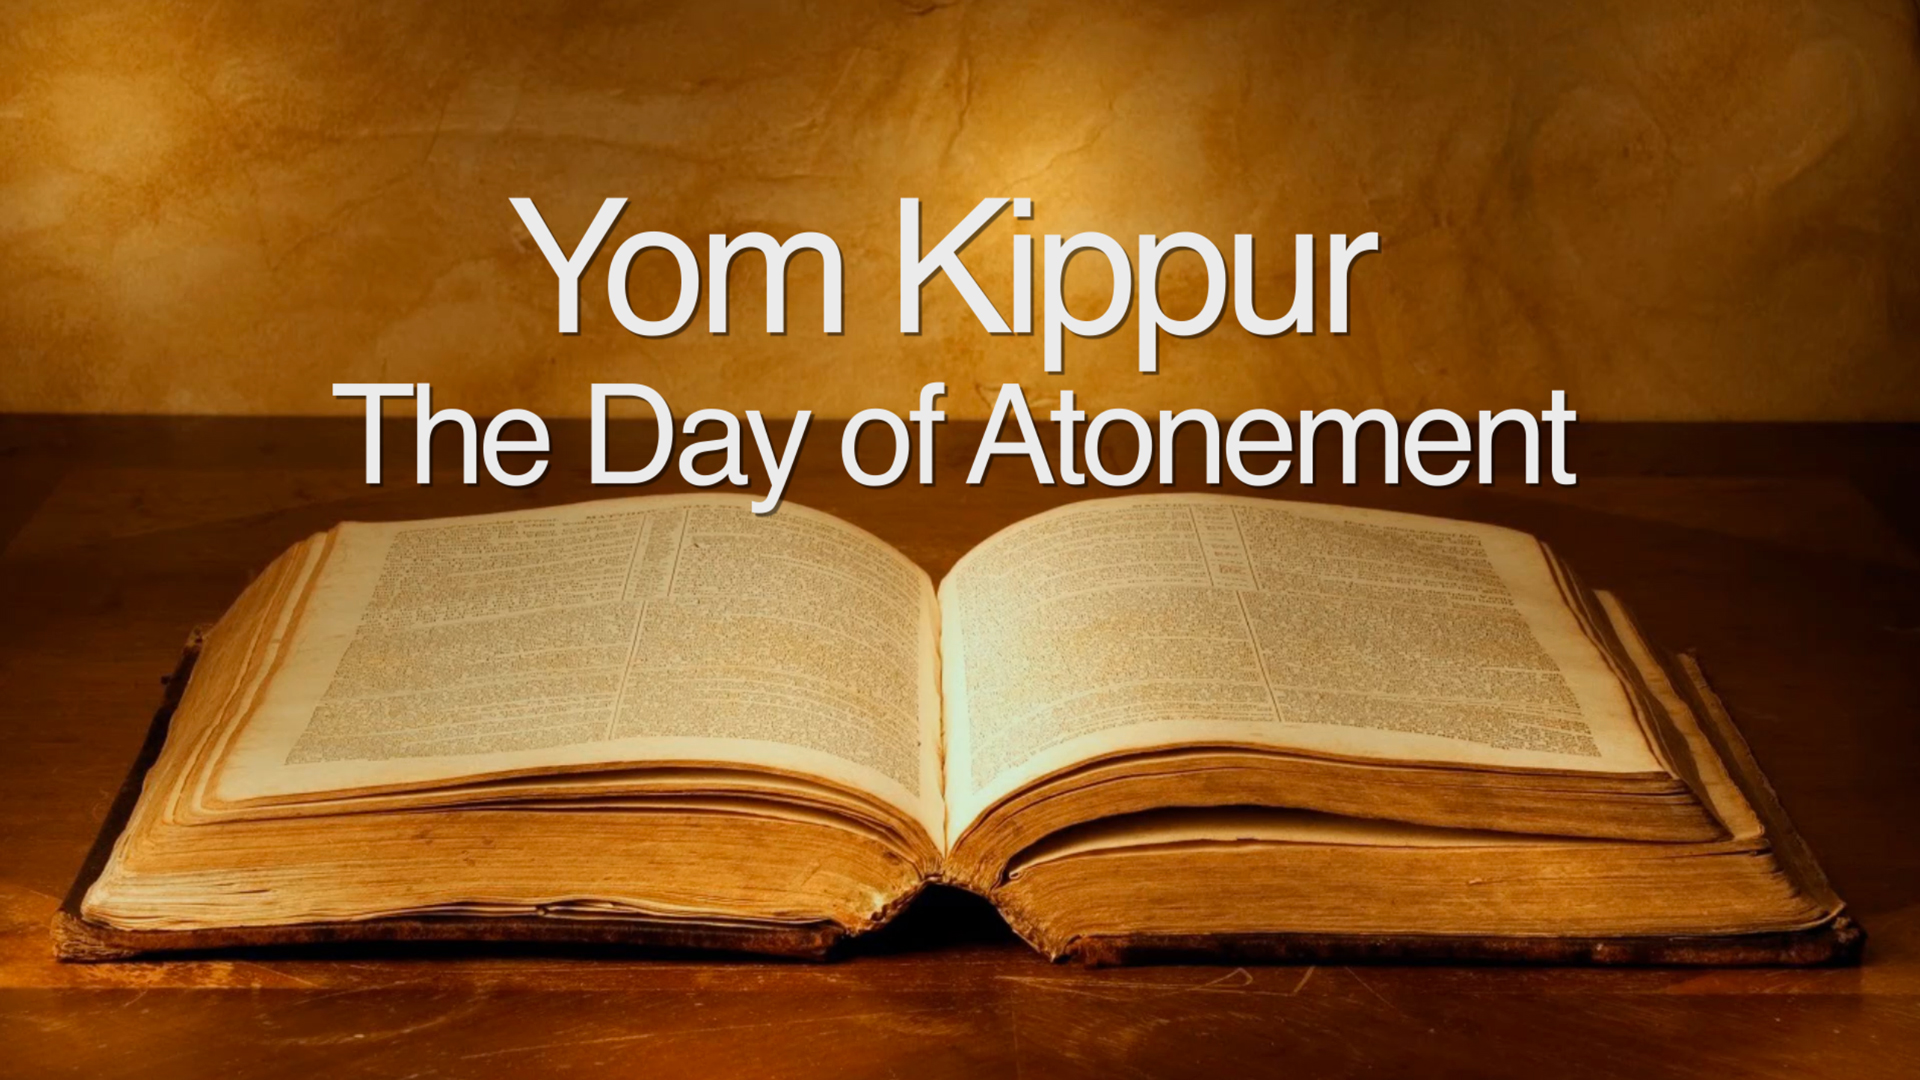 Yom kippur dates in Perth